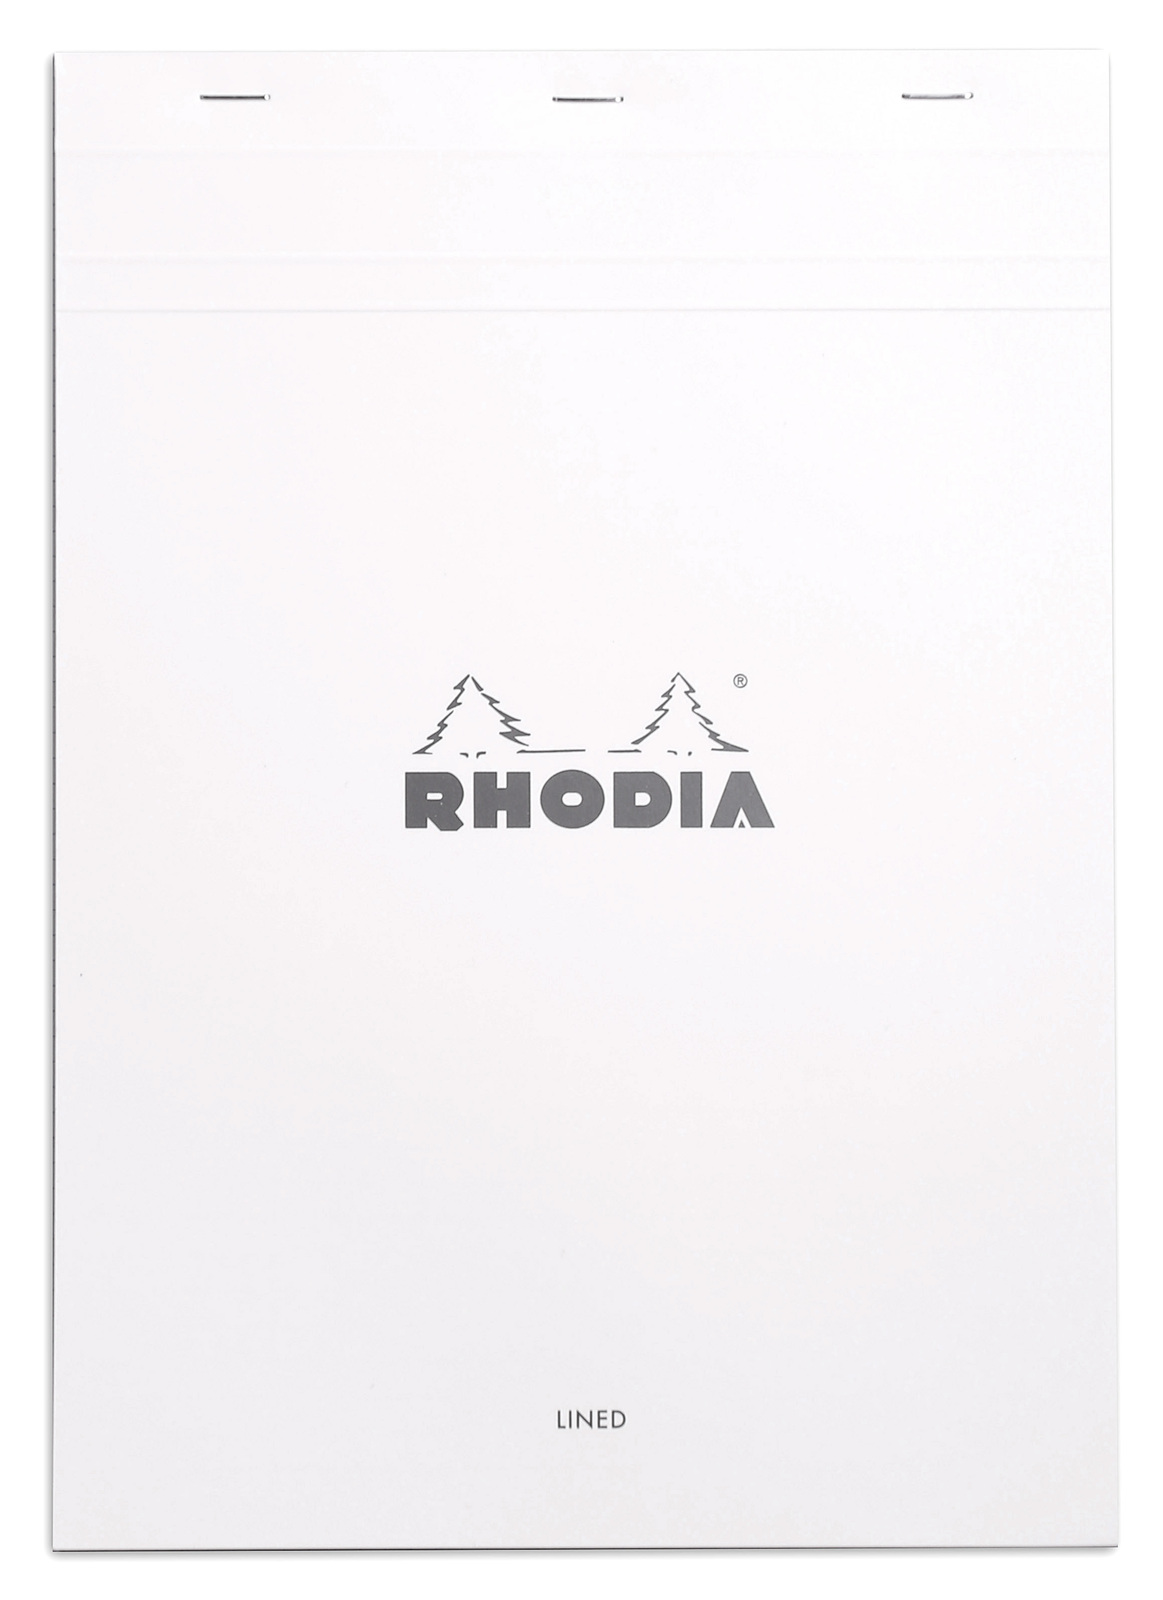 Bloc Rhodia White A4 - Lined image